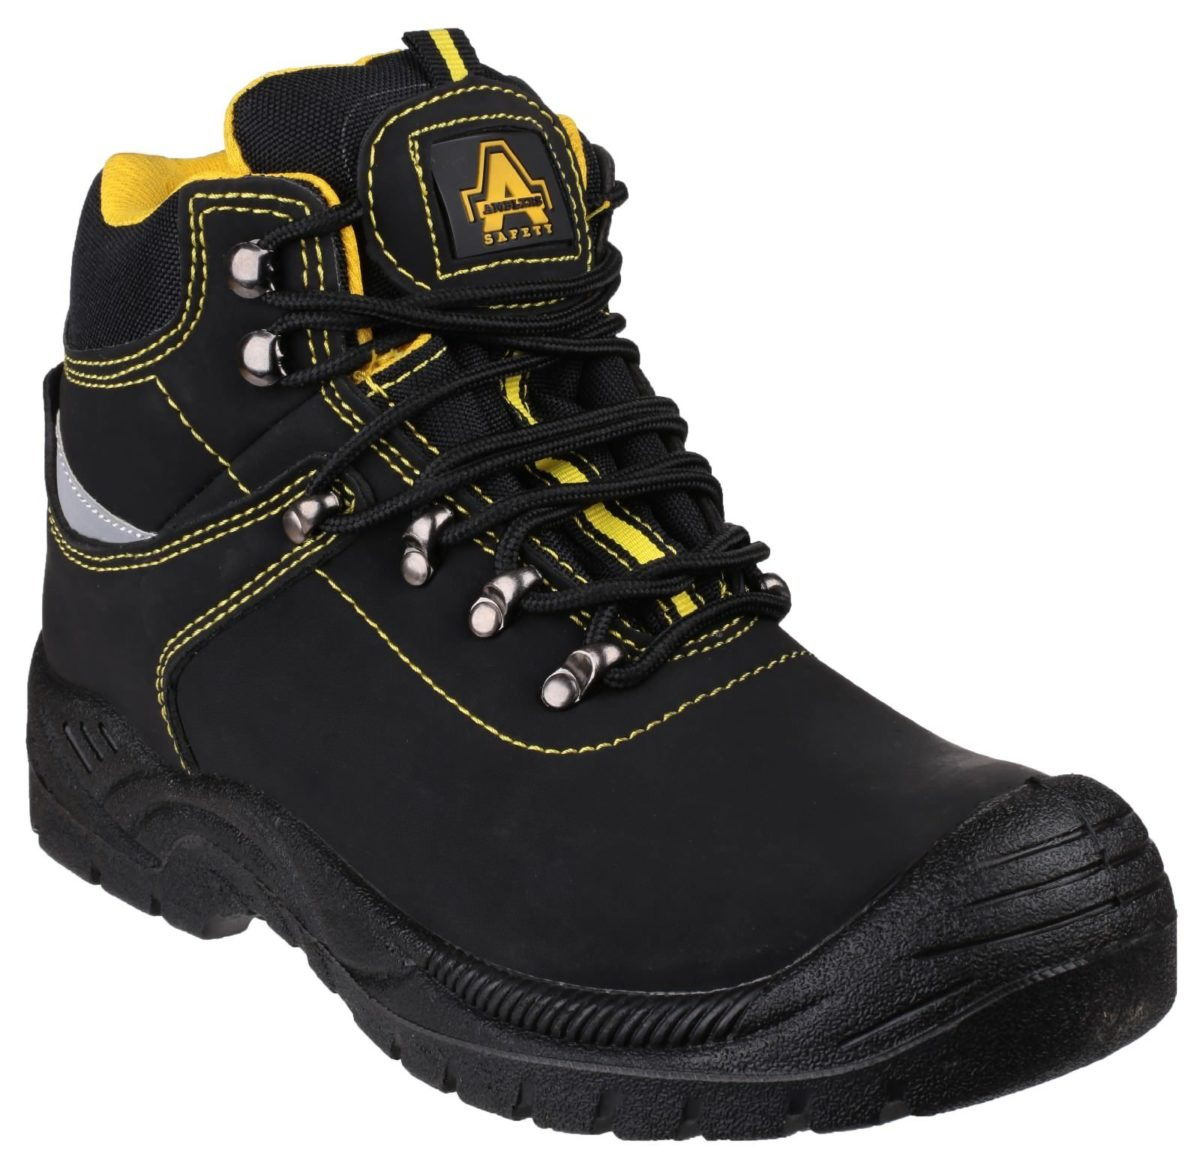 Amblers FS213 Pad Top Hiker Safety Boot